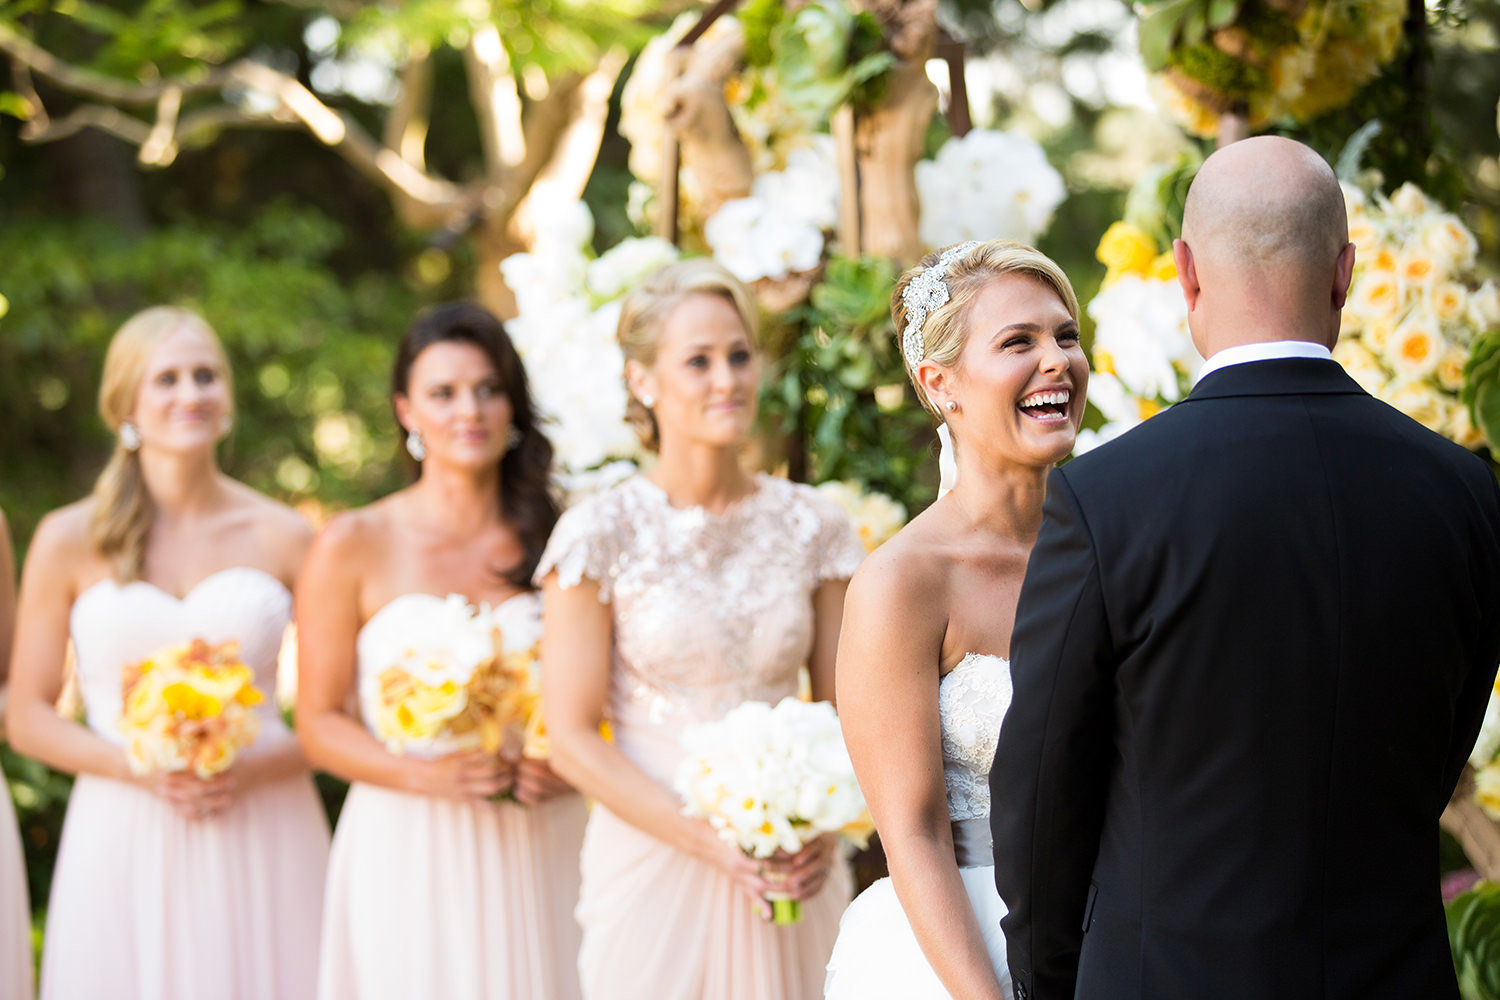 Laughter during the wedding vows is one of our favorite moments